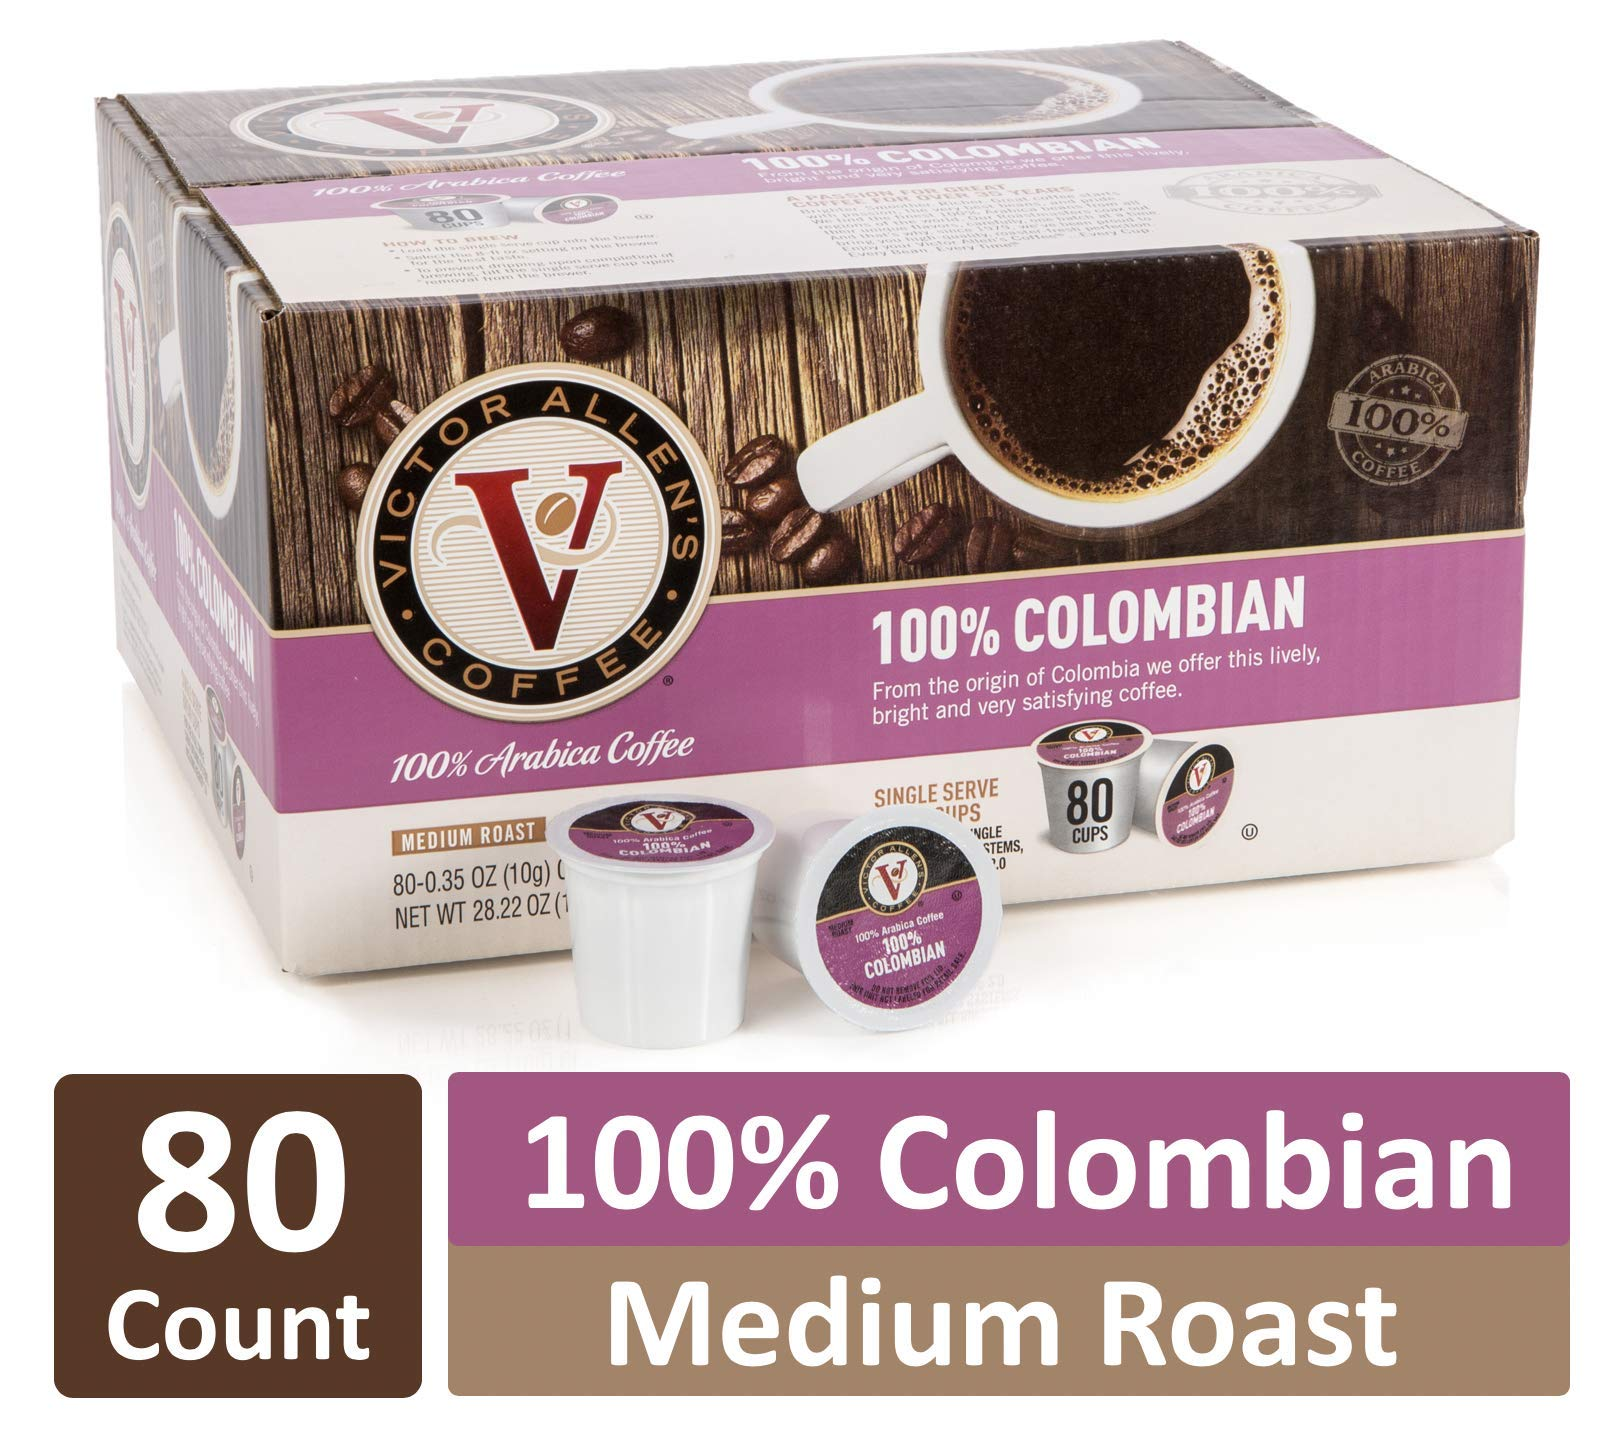 100% Colombian for K-Cup Keurig 2.0 Brewers, 80 Count, Victor Allen's Coffee Medium Roast Single Serve Coffee Pods